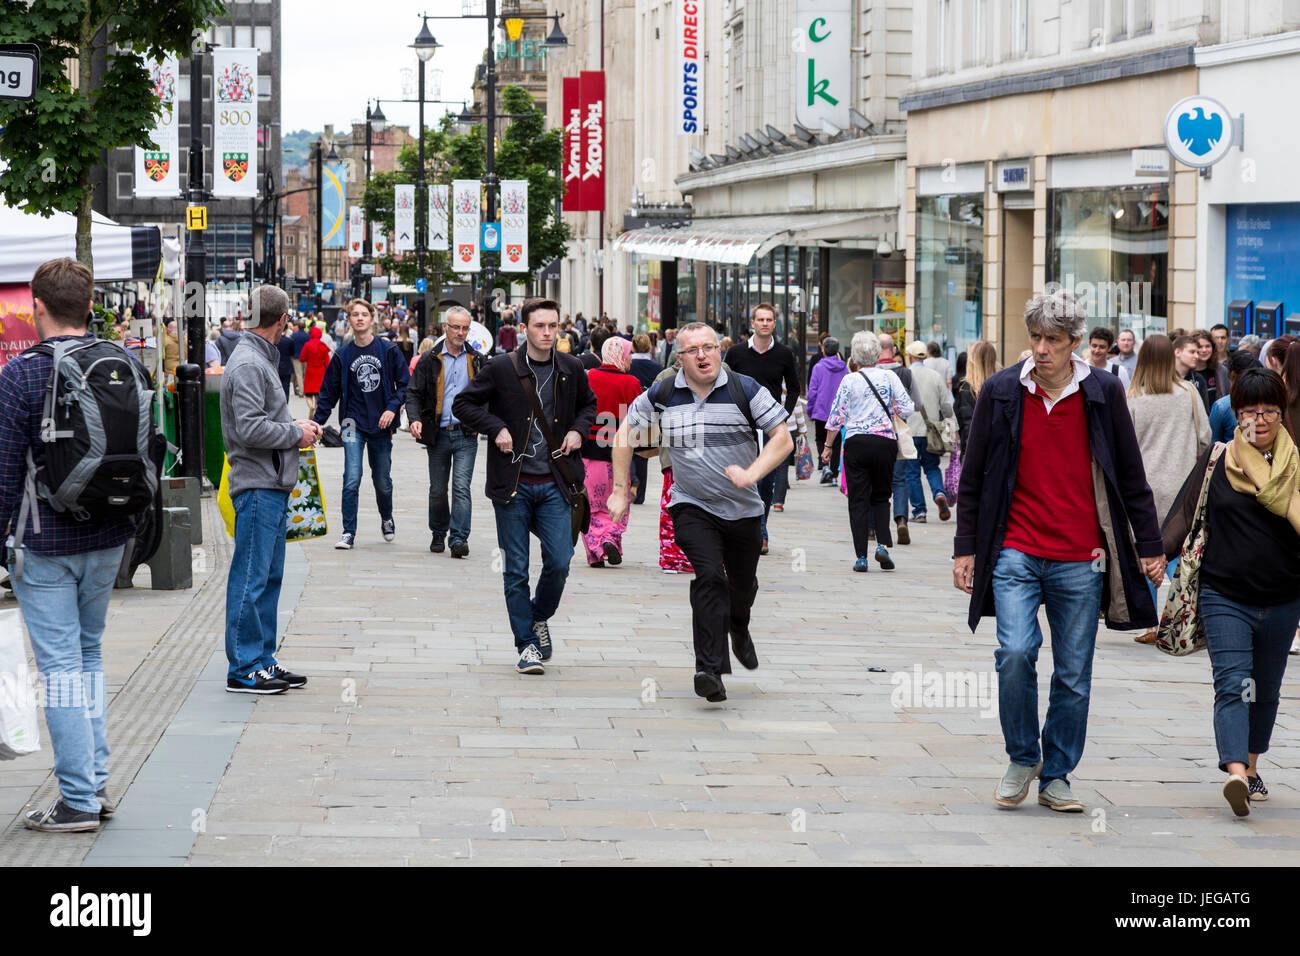 Newcastle-upon-Tyne, Angleterre, Royaume-Uni. Scène de rue Northumberland, les piétons circulant, boutiques. Photo Stock